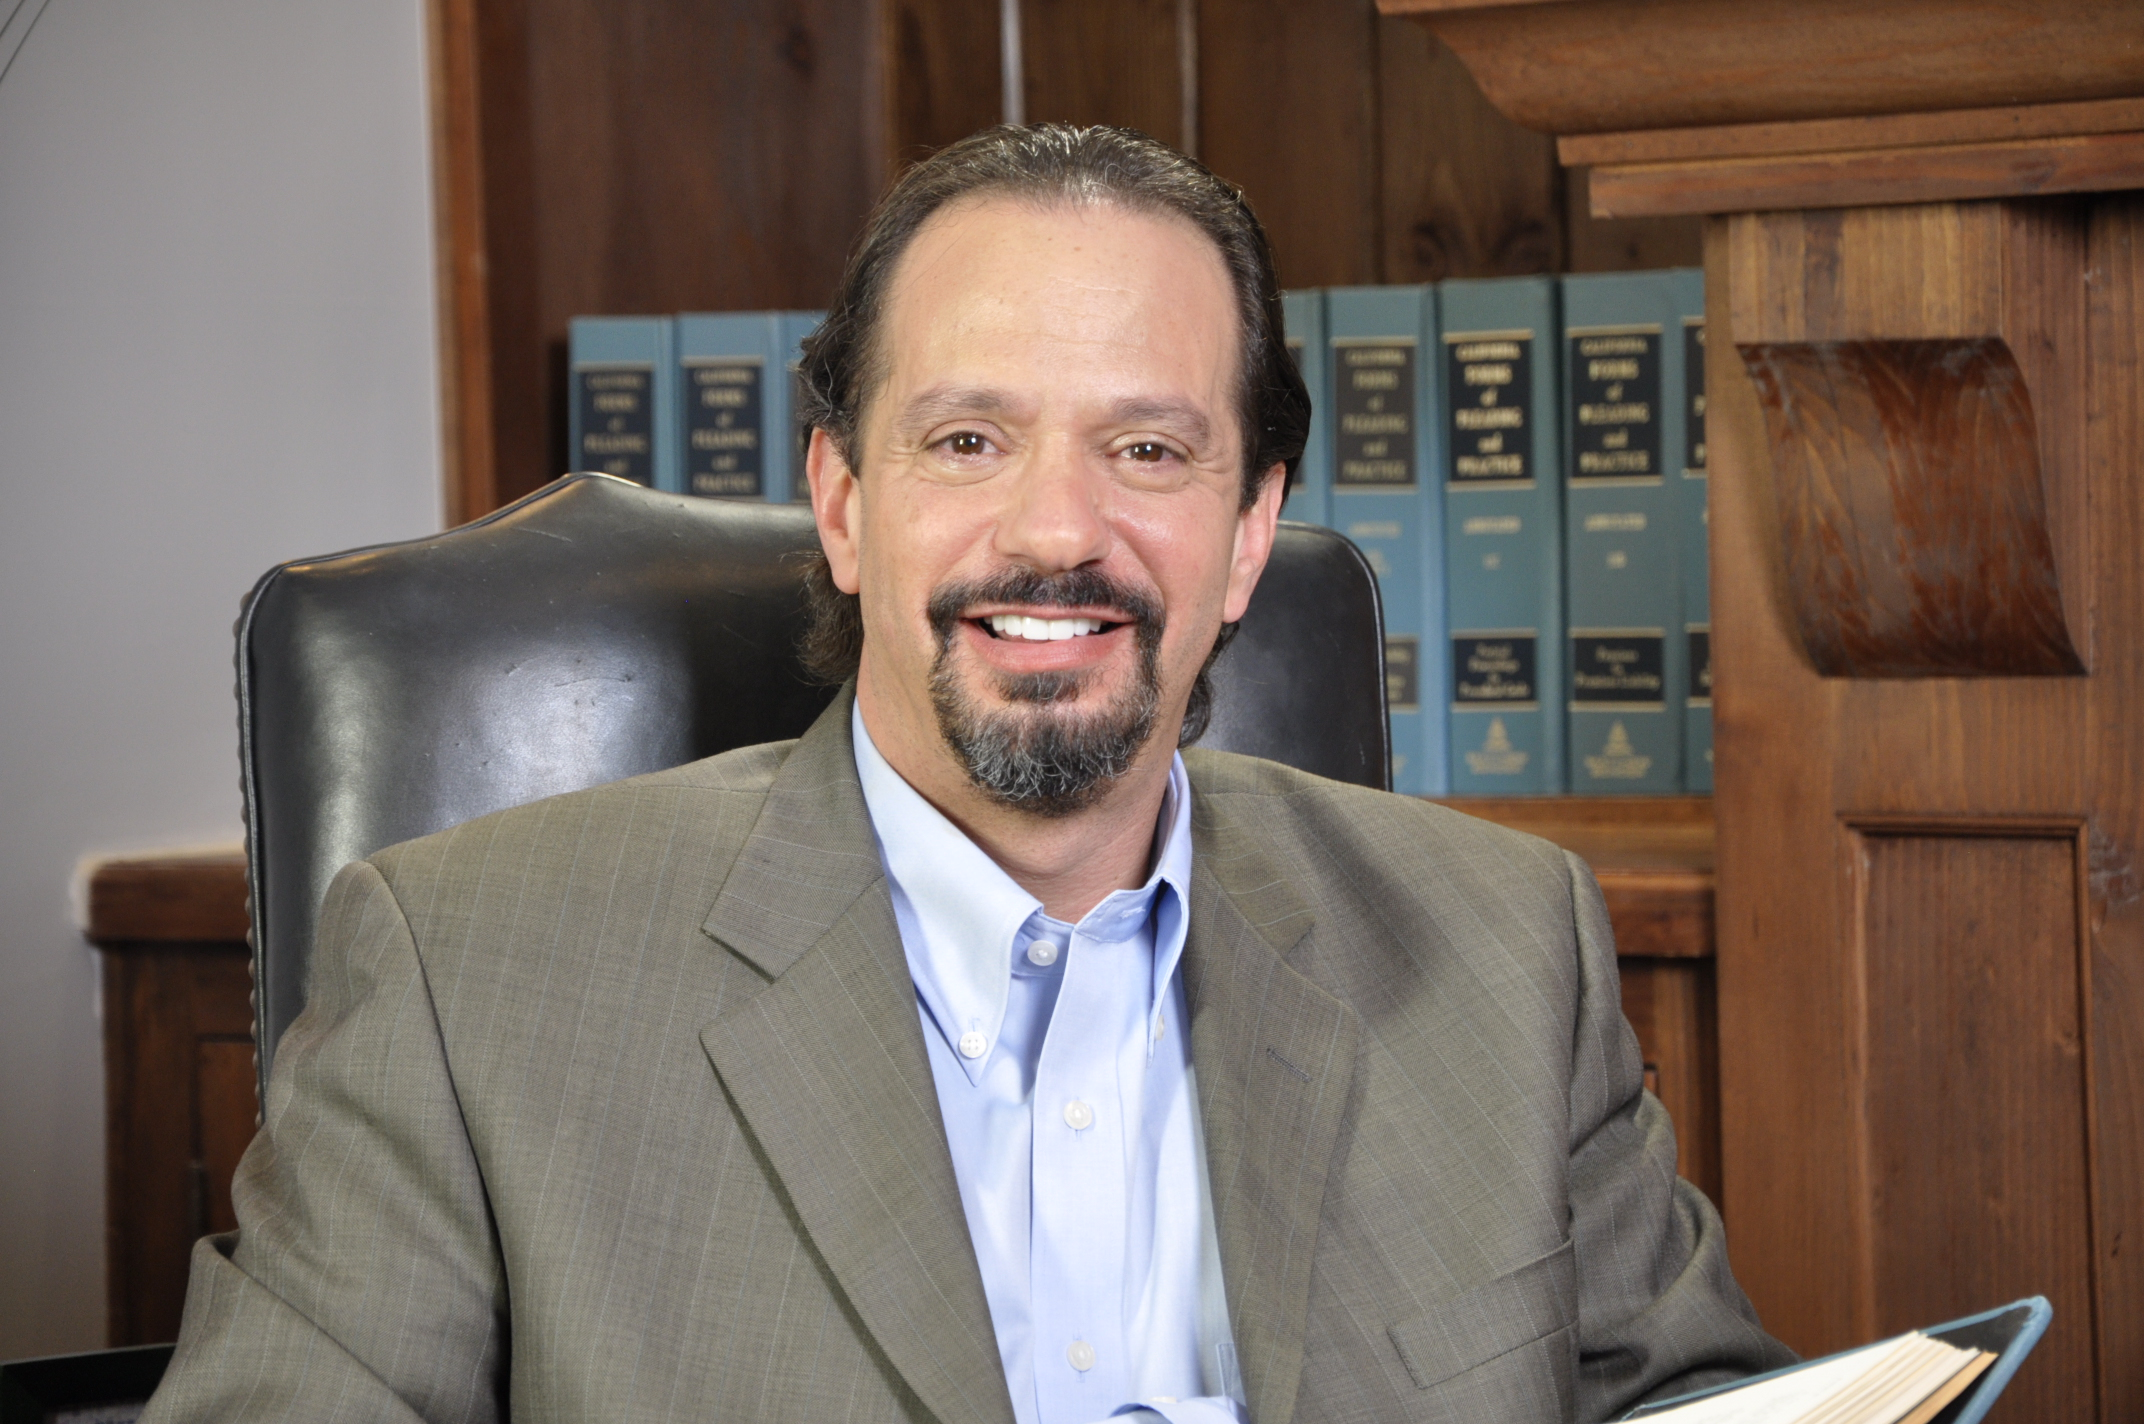 Jeff Hagen a Bankruptcy Attorney practicing in Woodland Hills, CA